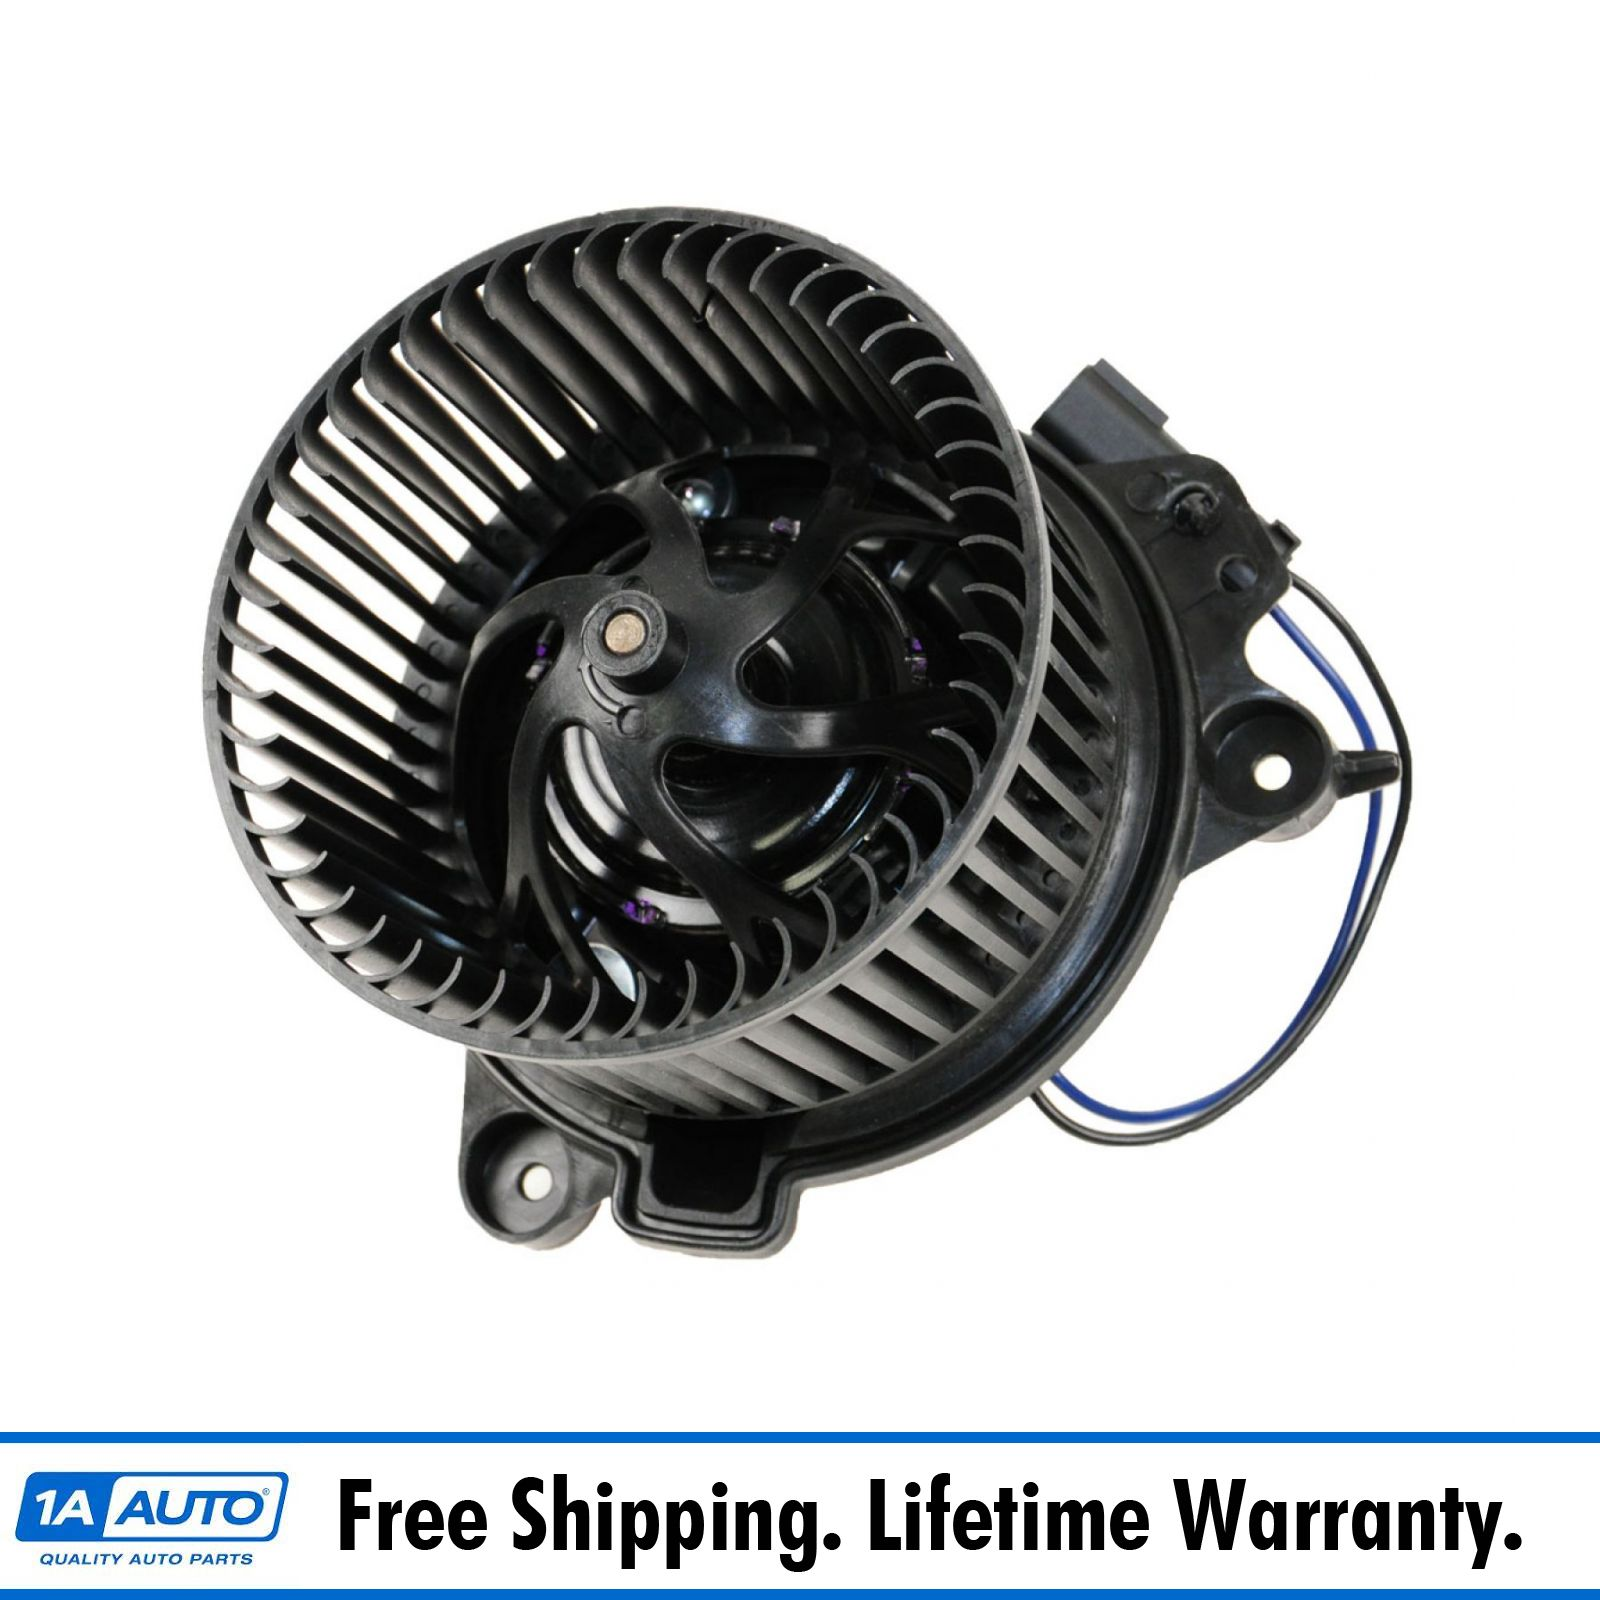 A//C Heater Blower Motor w// Fan Cage 2108206842 for Mercedes Benz